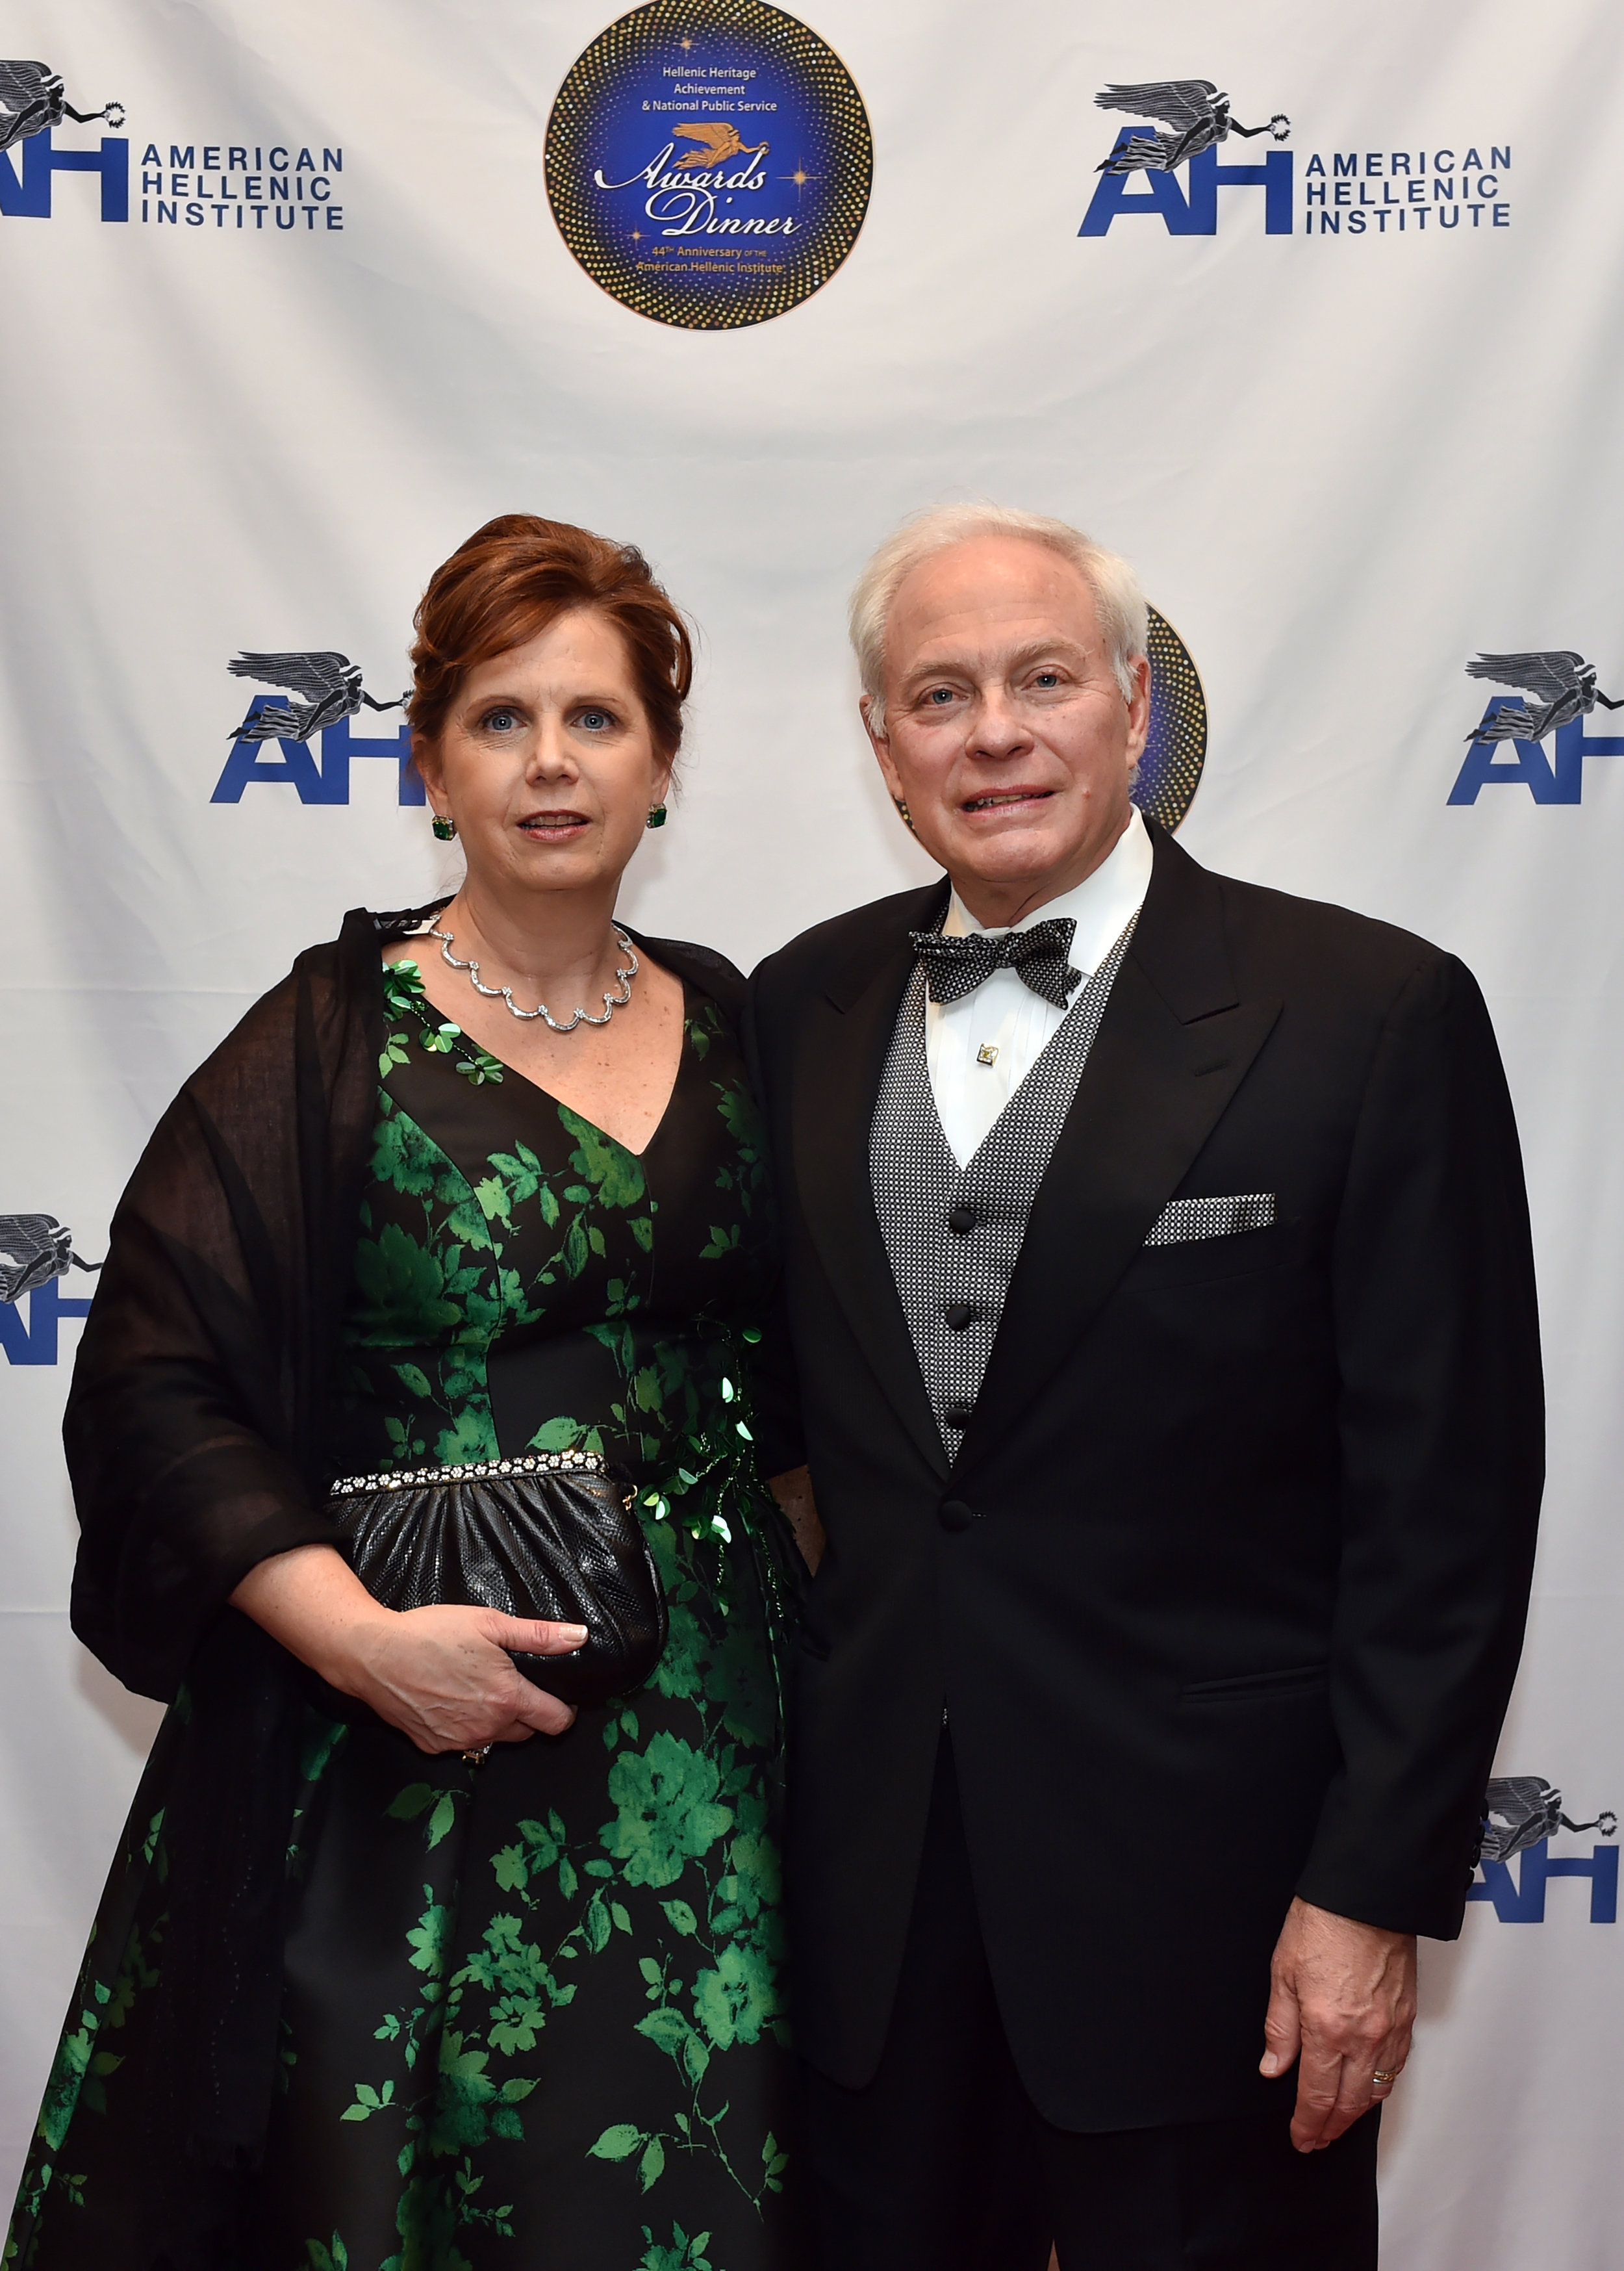 Nicholas Chimicles with his wife Kathleen Chimicles